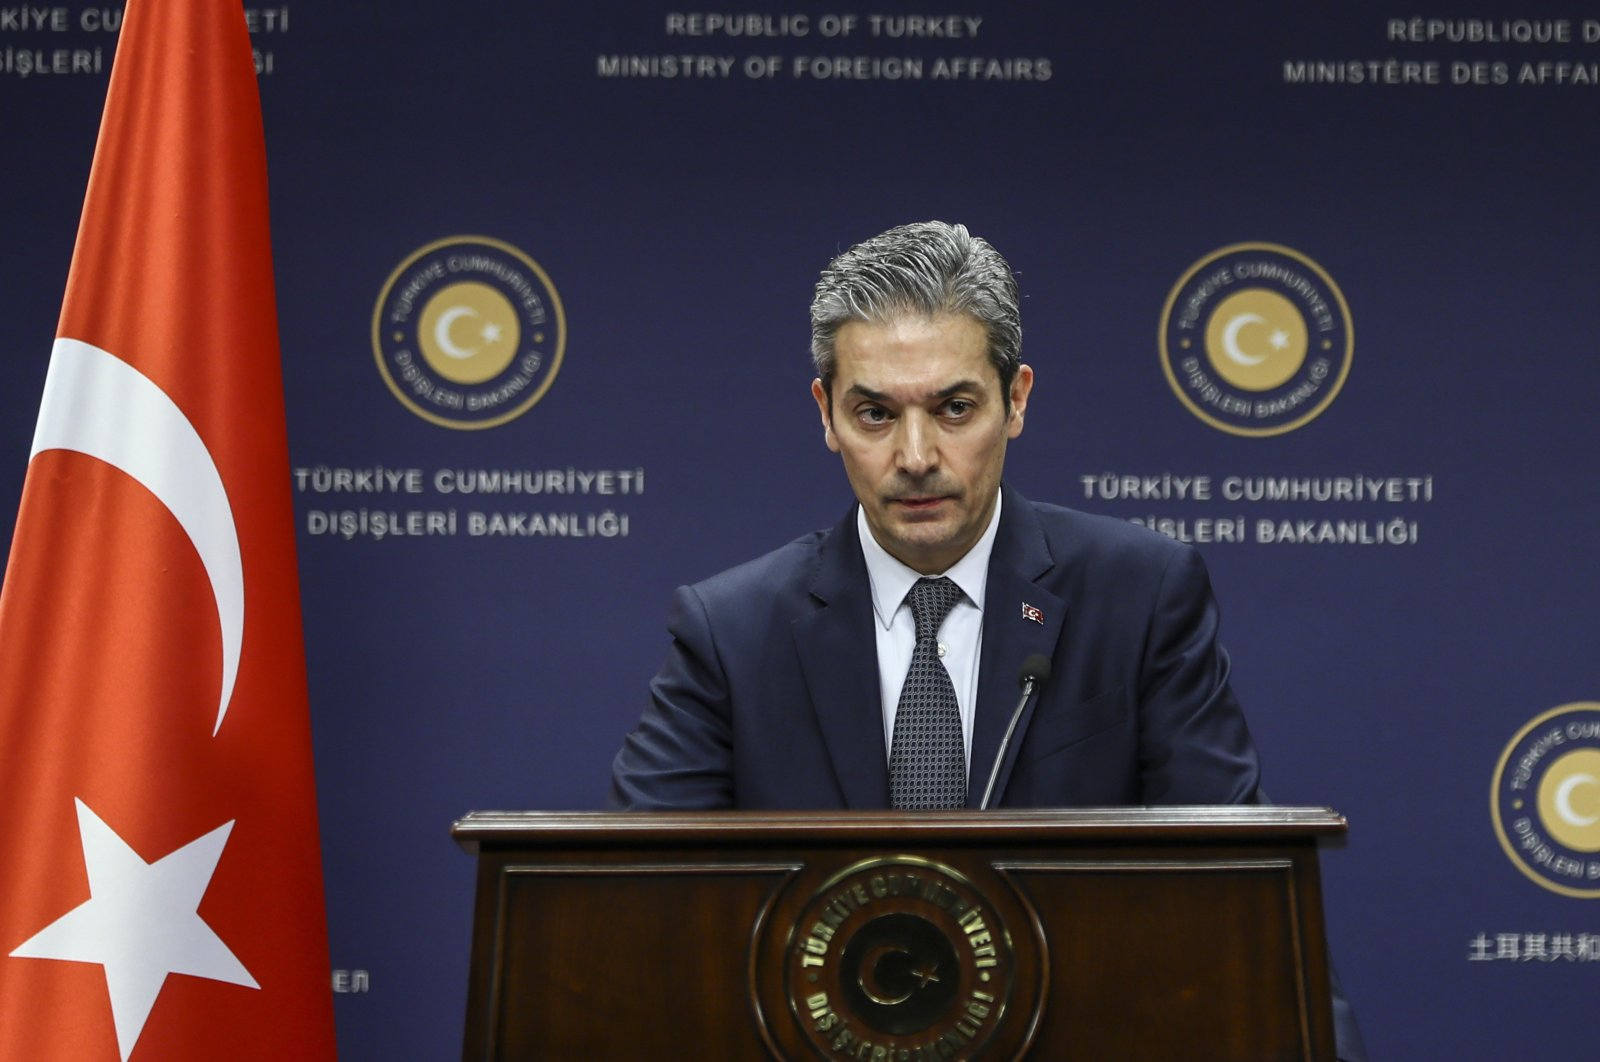 Hami Aksoy, spokesman for the Turkish Foreign Ministry. (AA Photo)